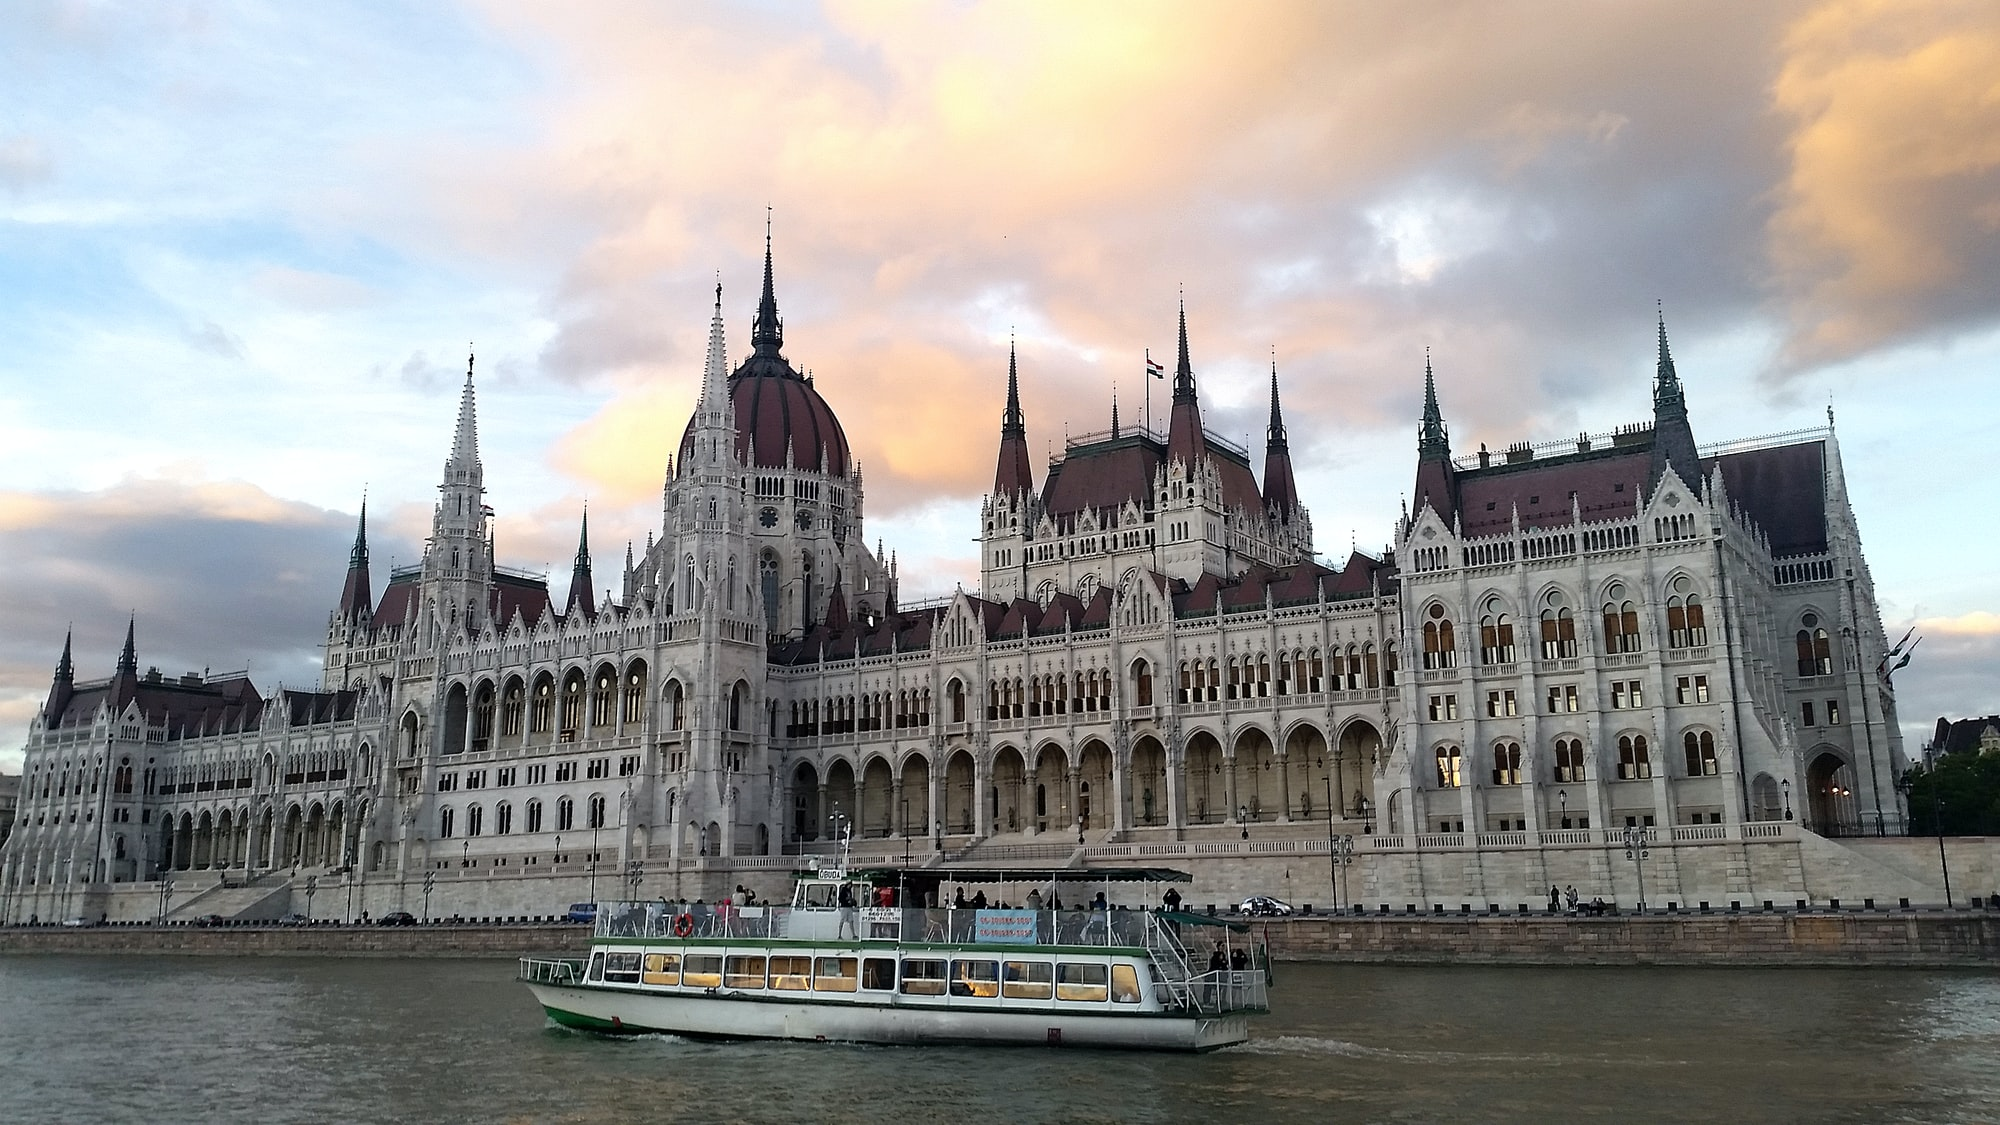 Budapest Parliament seen from a Danube boat cruise on sunset.